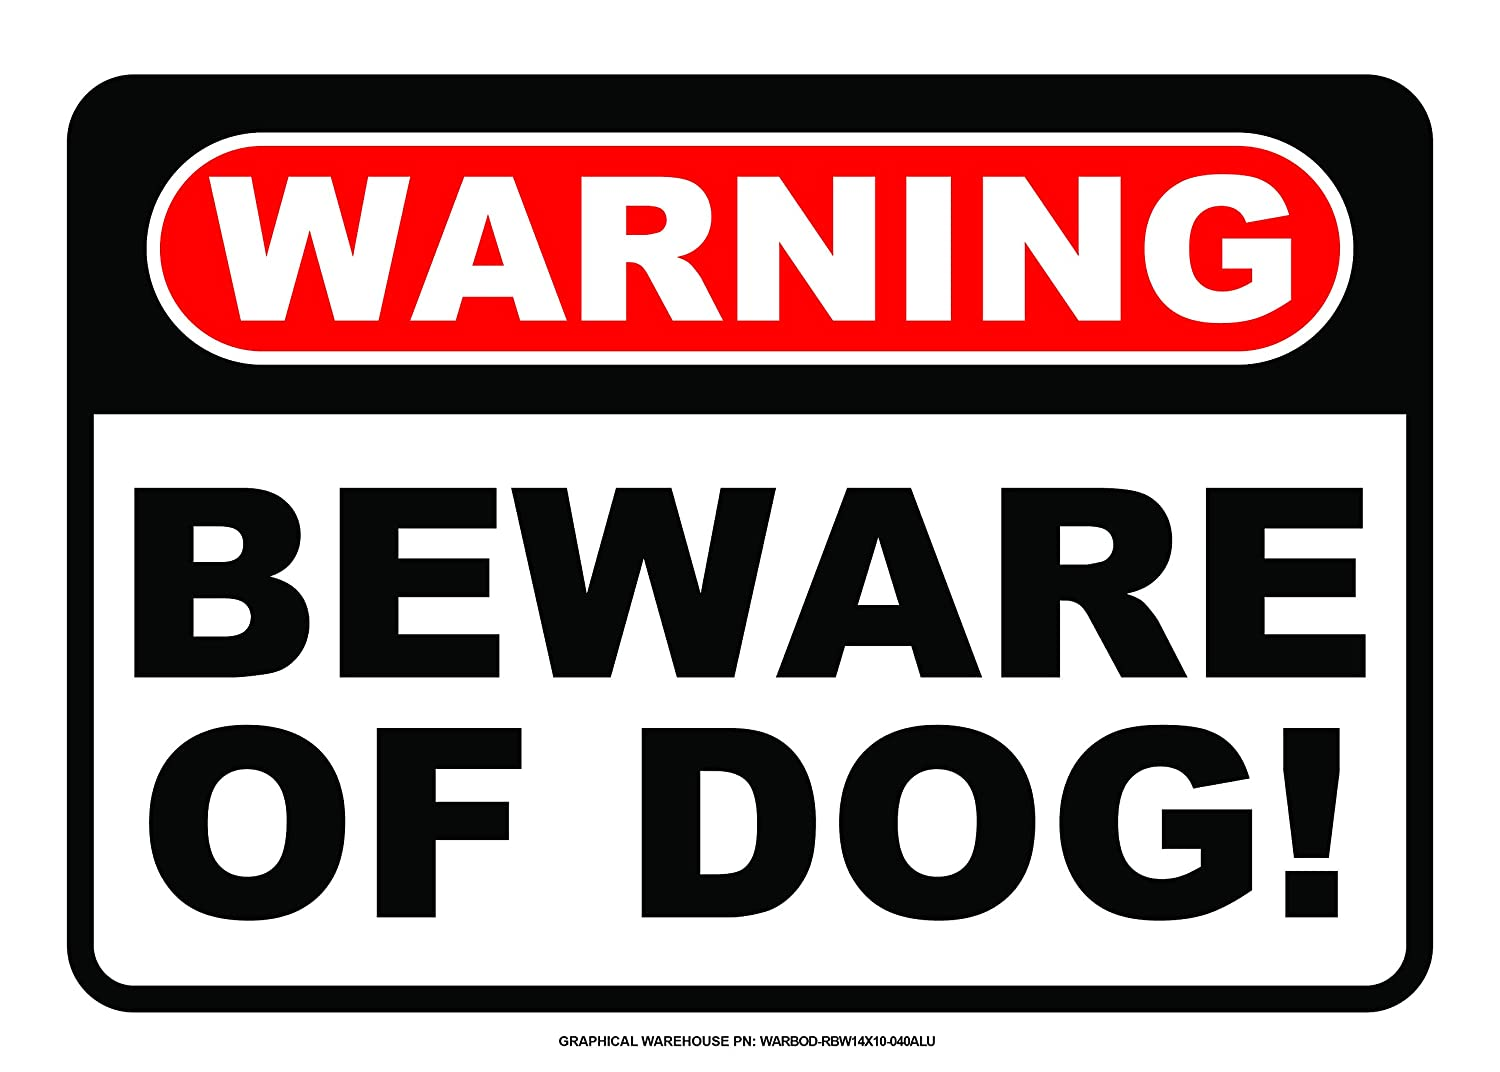 Beware of Dog Sign Warning Sign by Graphical Warehouse 10 x 14 Vibrant Color Contrast Red//White//Black Easy Mounting, Mounted on Sturdy styrene Plastic